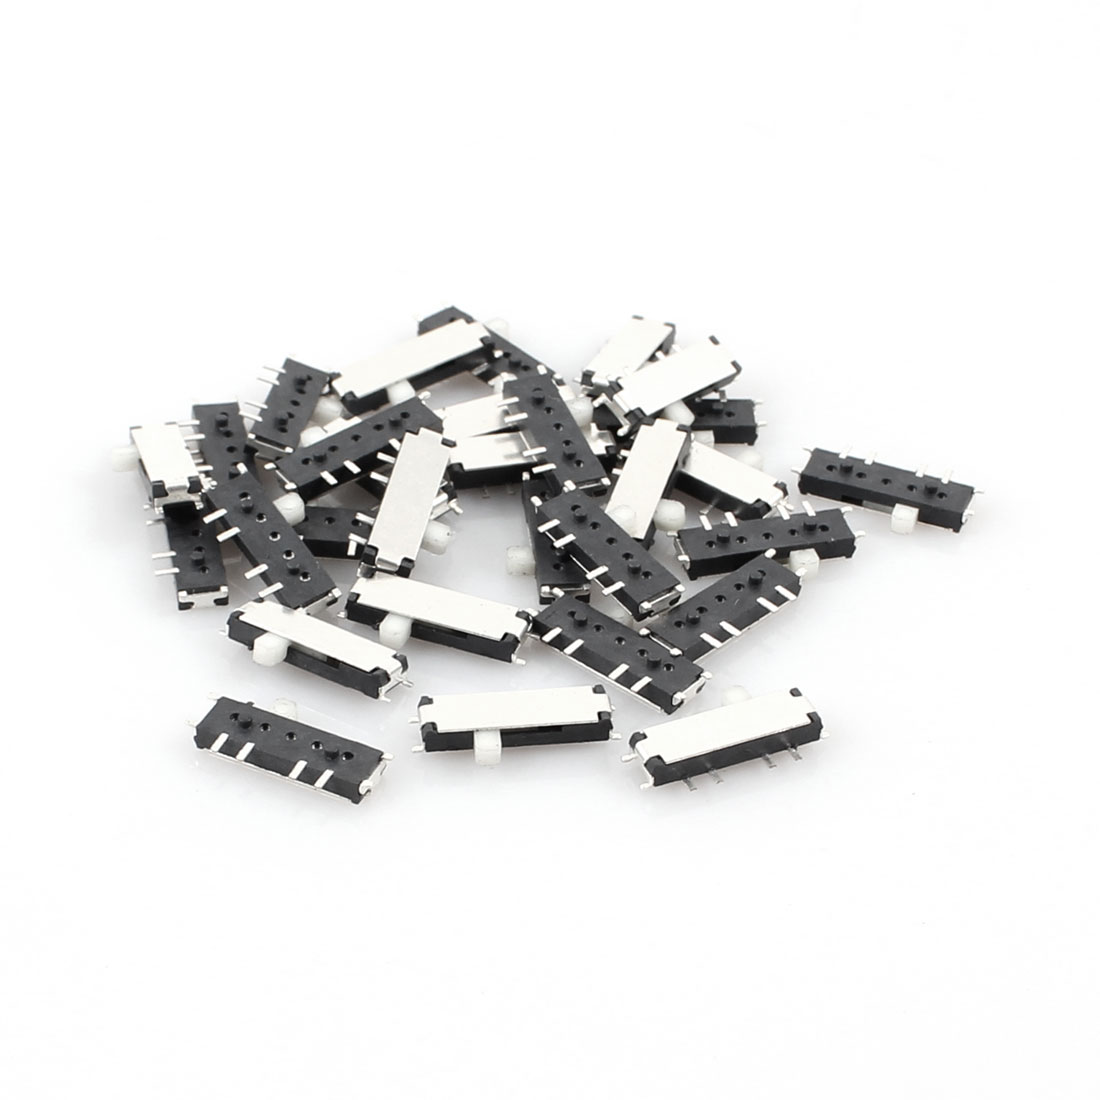 30 Pcs On/Off/On 8 Pin 2P2T DPDT Horizontal Mini SMD SMT Slide Switch 10mm x 3mm